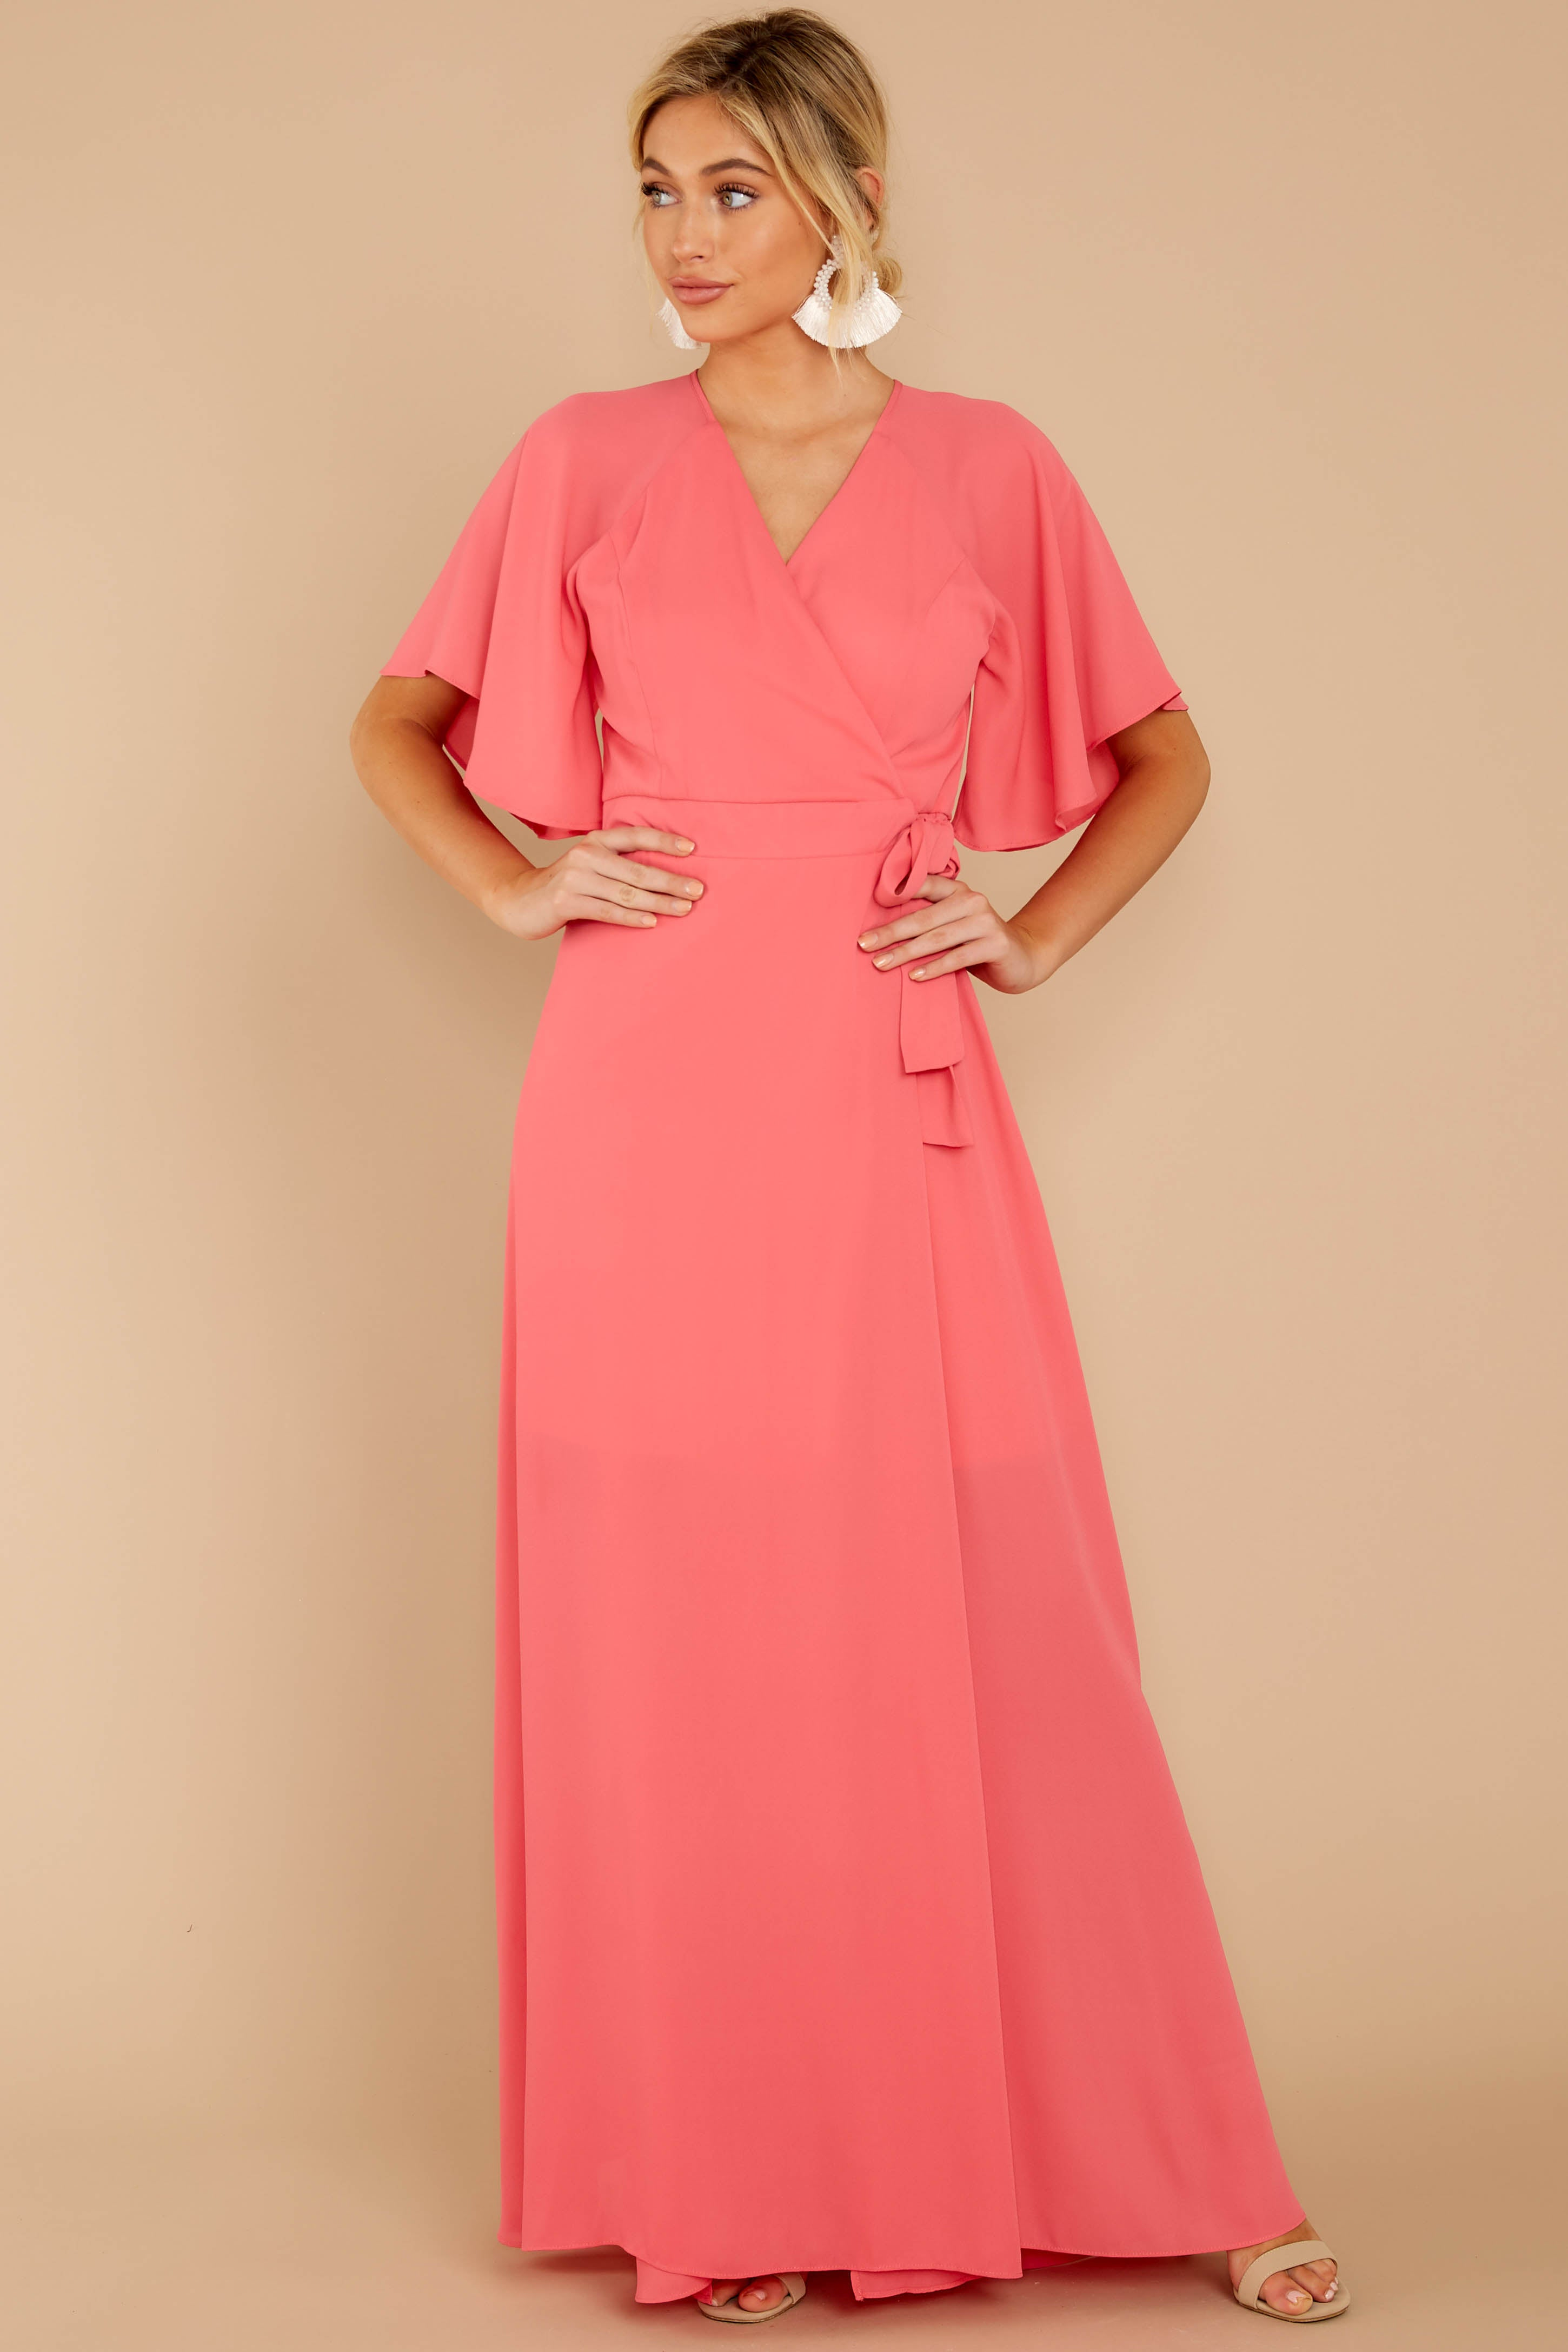 4 Wrapped In Elegance Flamingo Pink Maxi Dress at reddress.com